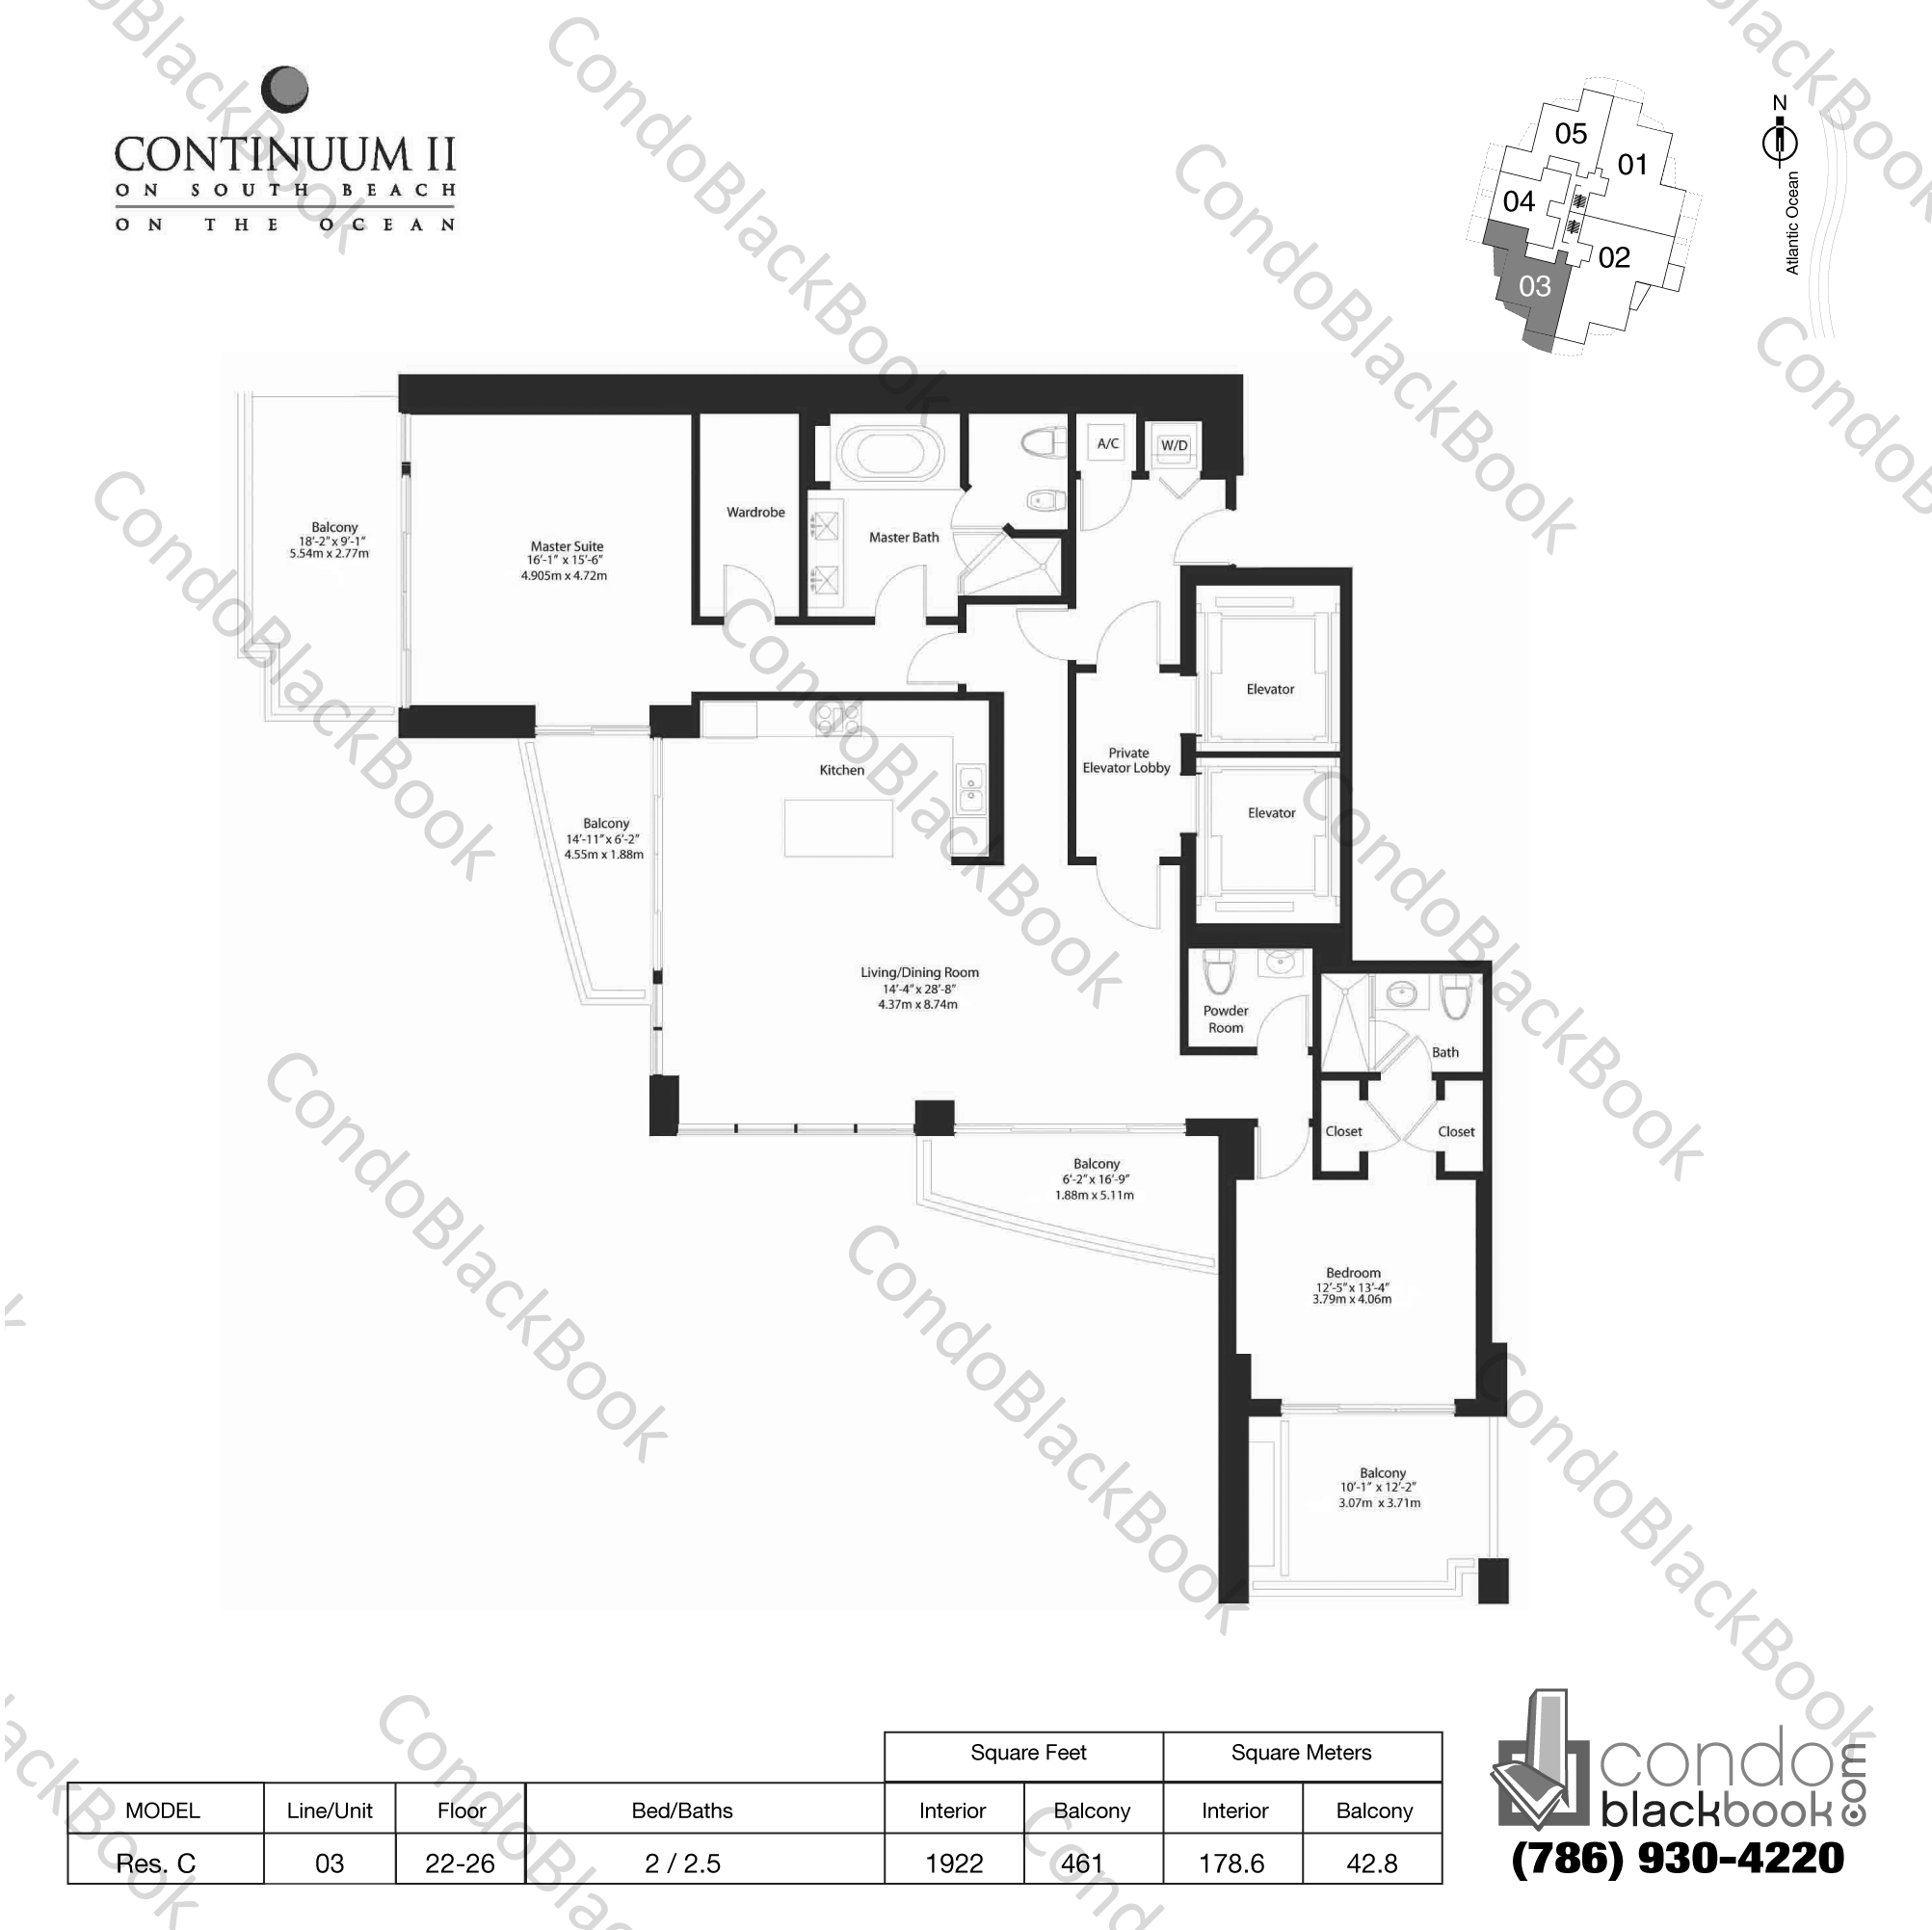 Floor plan for Continuum II North South Beach Miami Beach, model Res. C, line 03, 3 / 2.5 bedrooms, 1922 sq ft